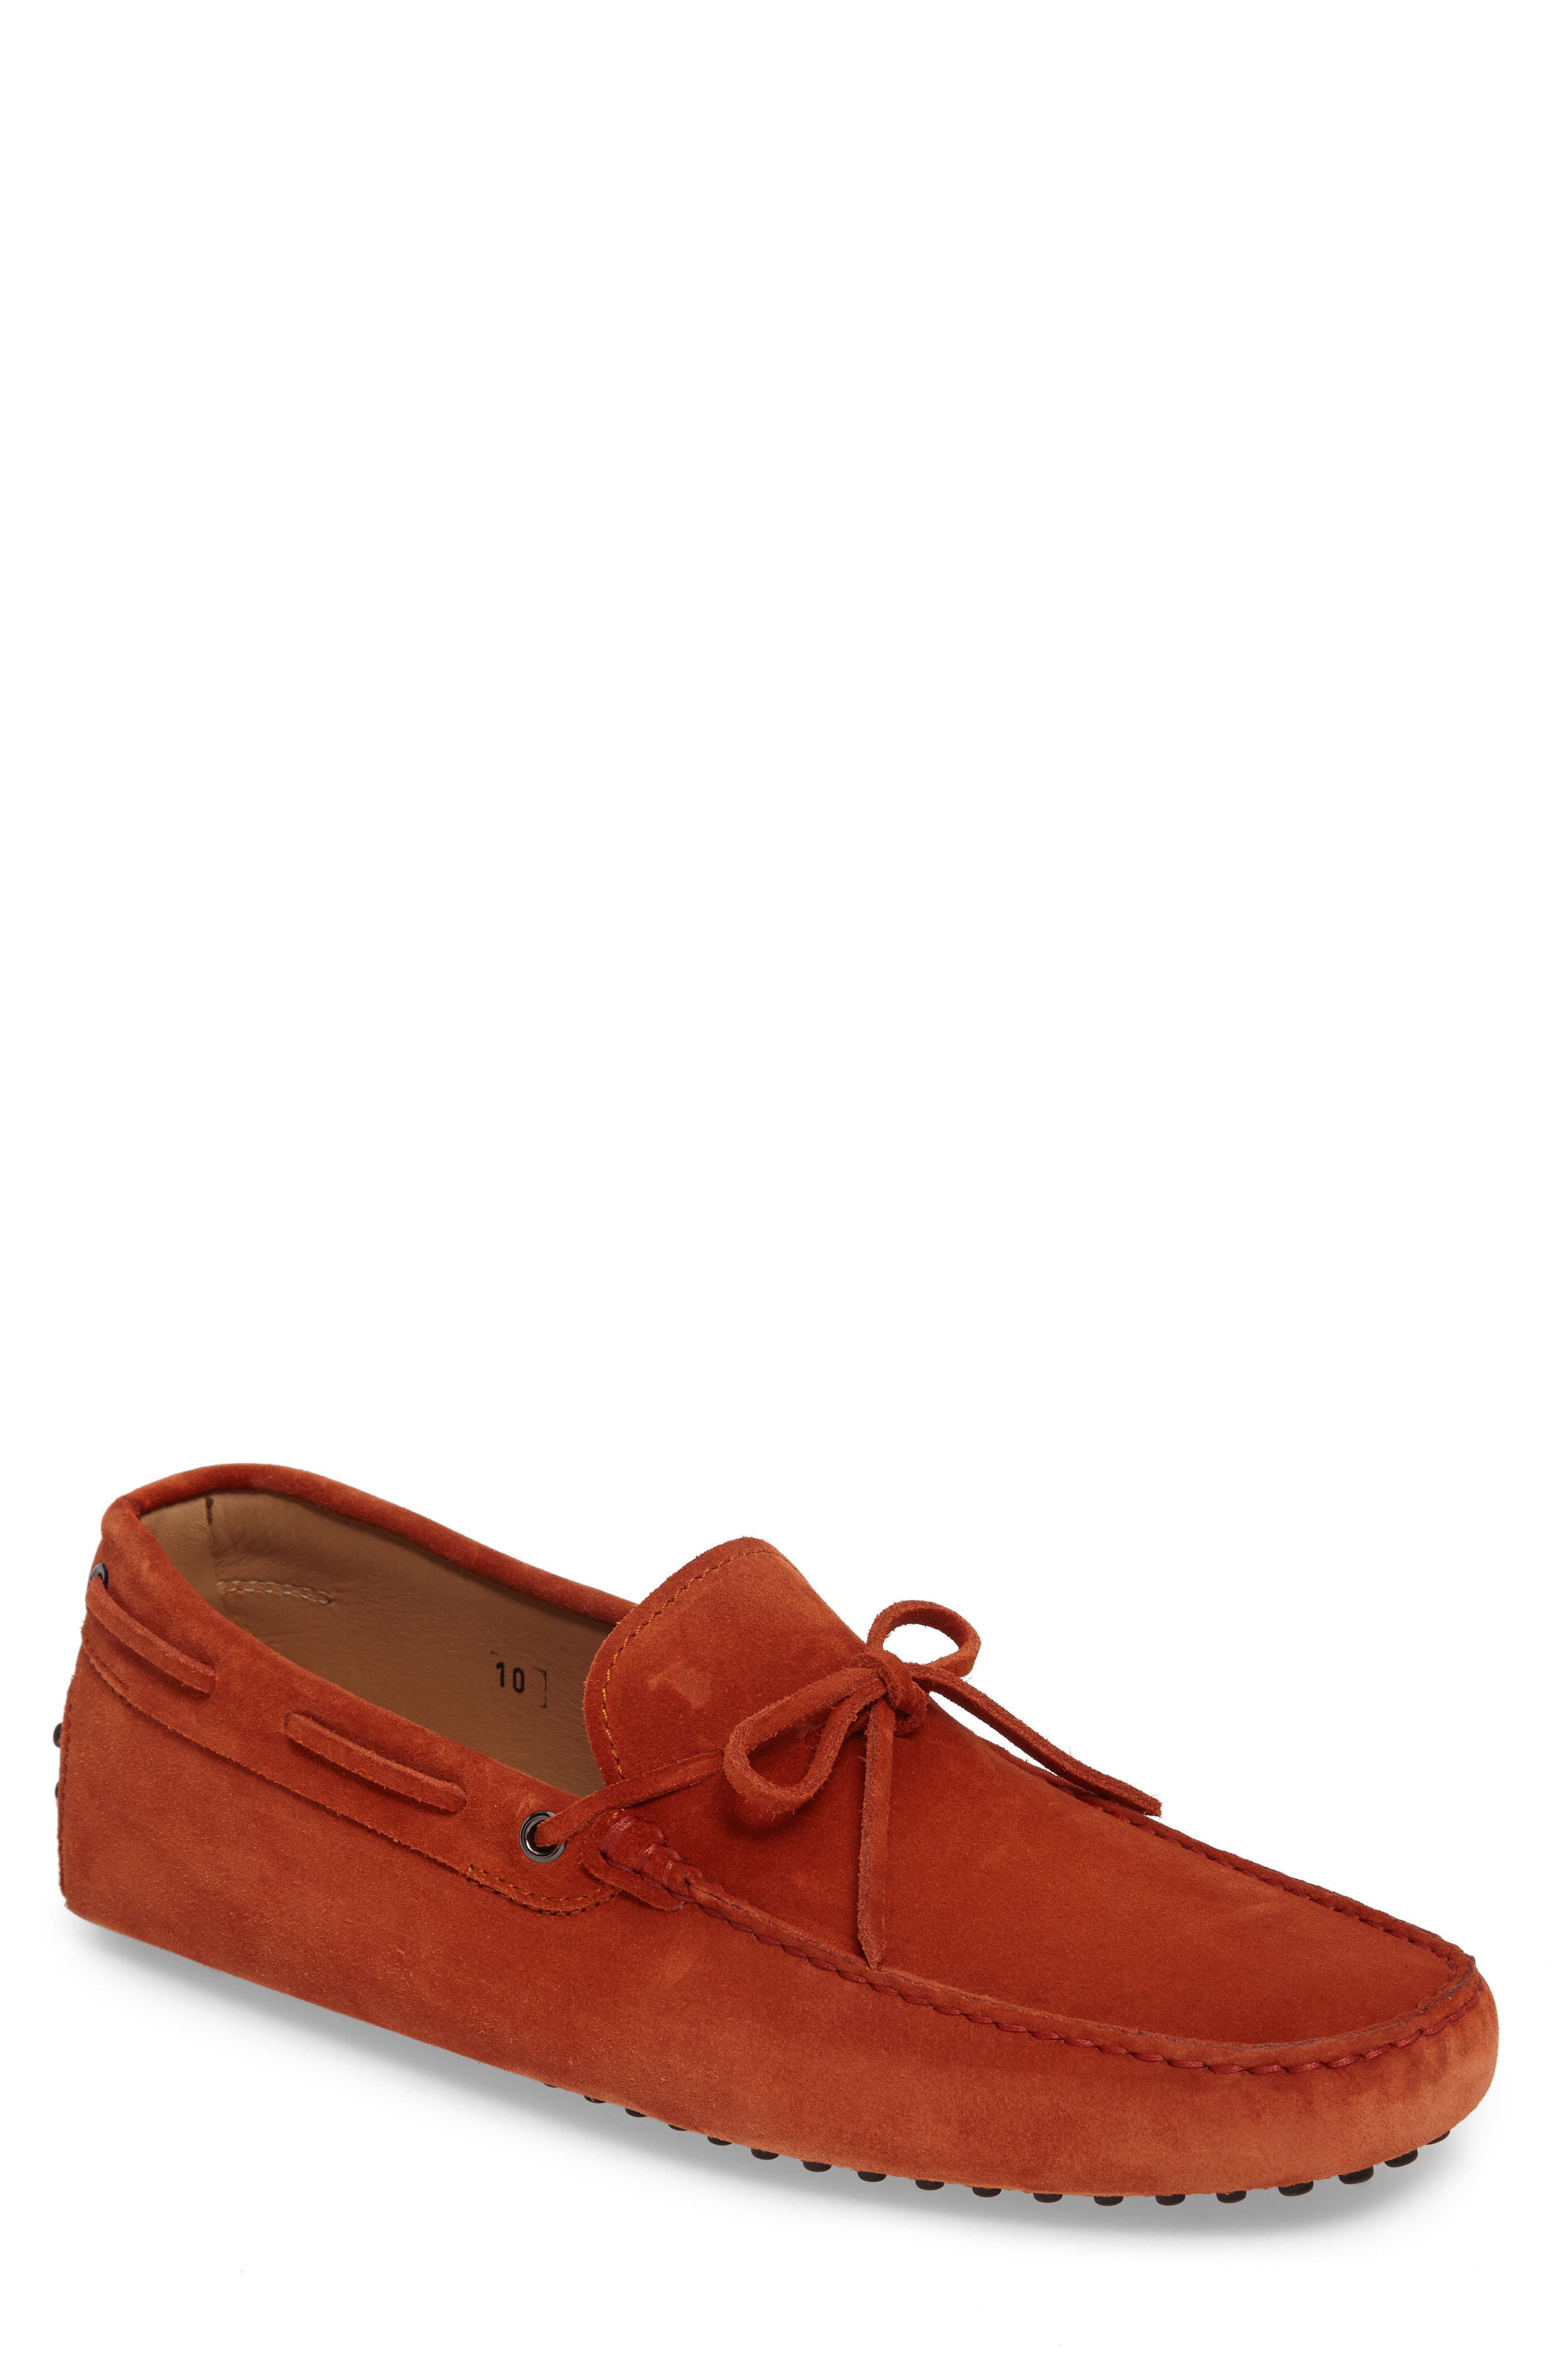 Alternate Image 1 Selected - Tod's Gommini Tie Front Driving Moccasin (Men)